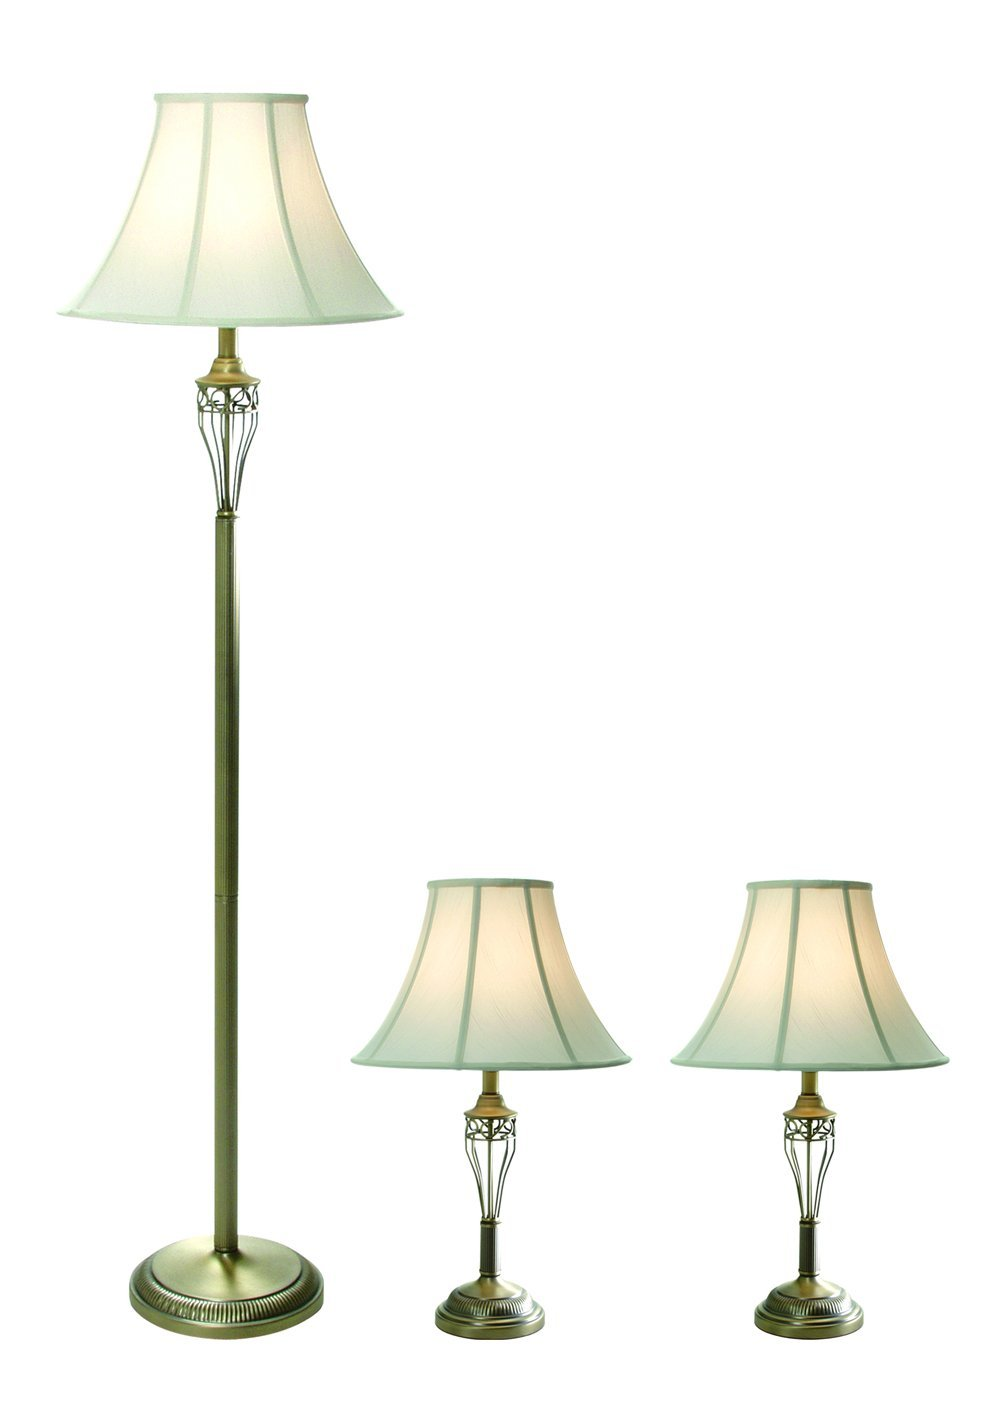 "Elegant Designs LC1001-ABS Three Pack Lamp Set (2 Table Lamps, 1 Floor Lamp), 7"" x 16"" x 25"", Antique Brass"